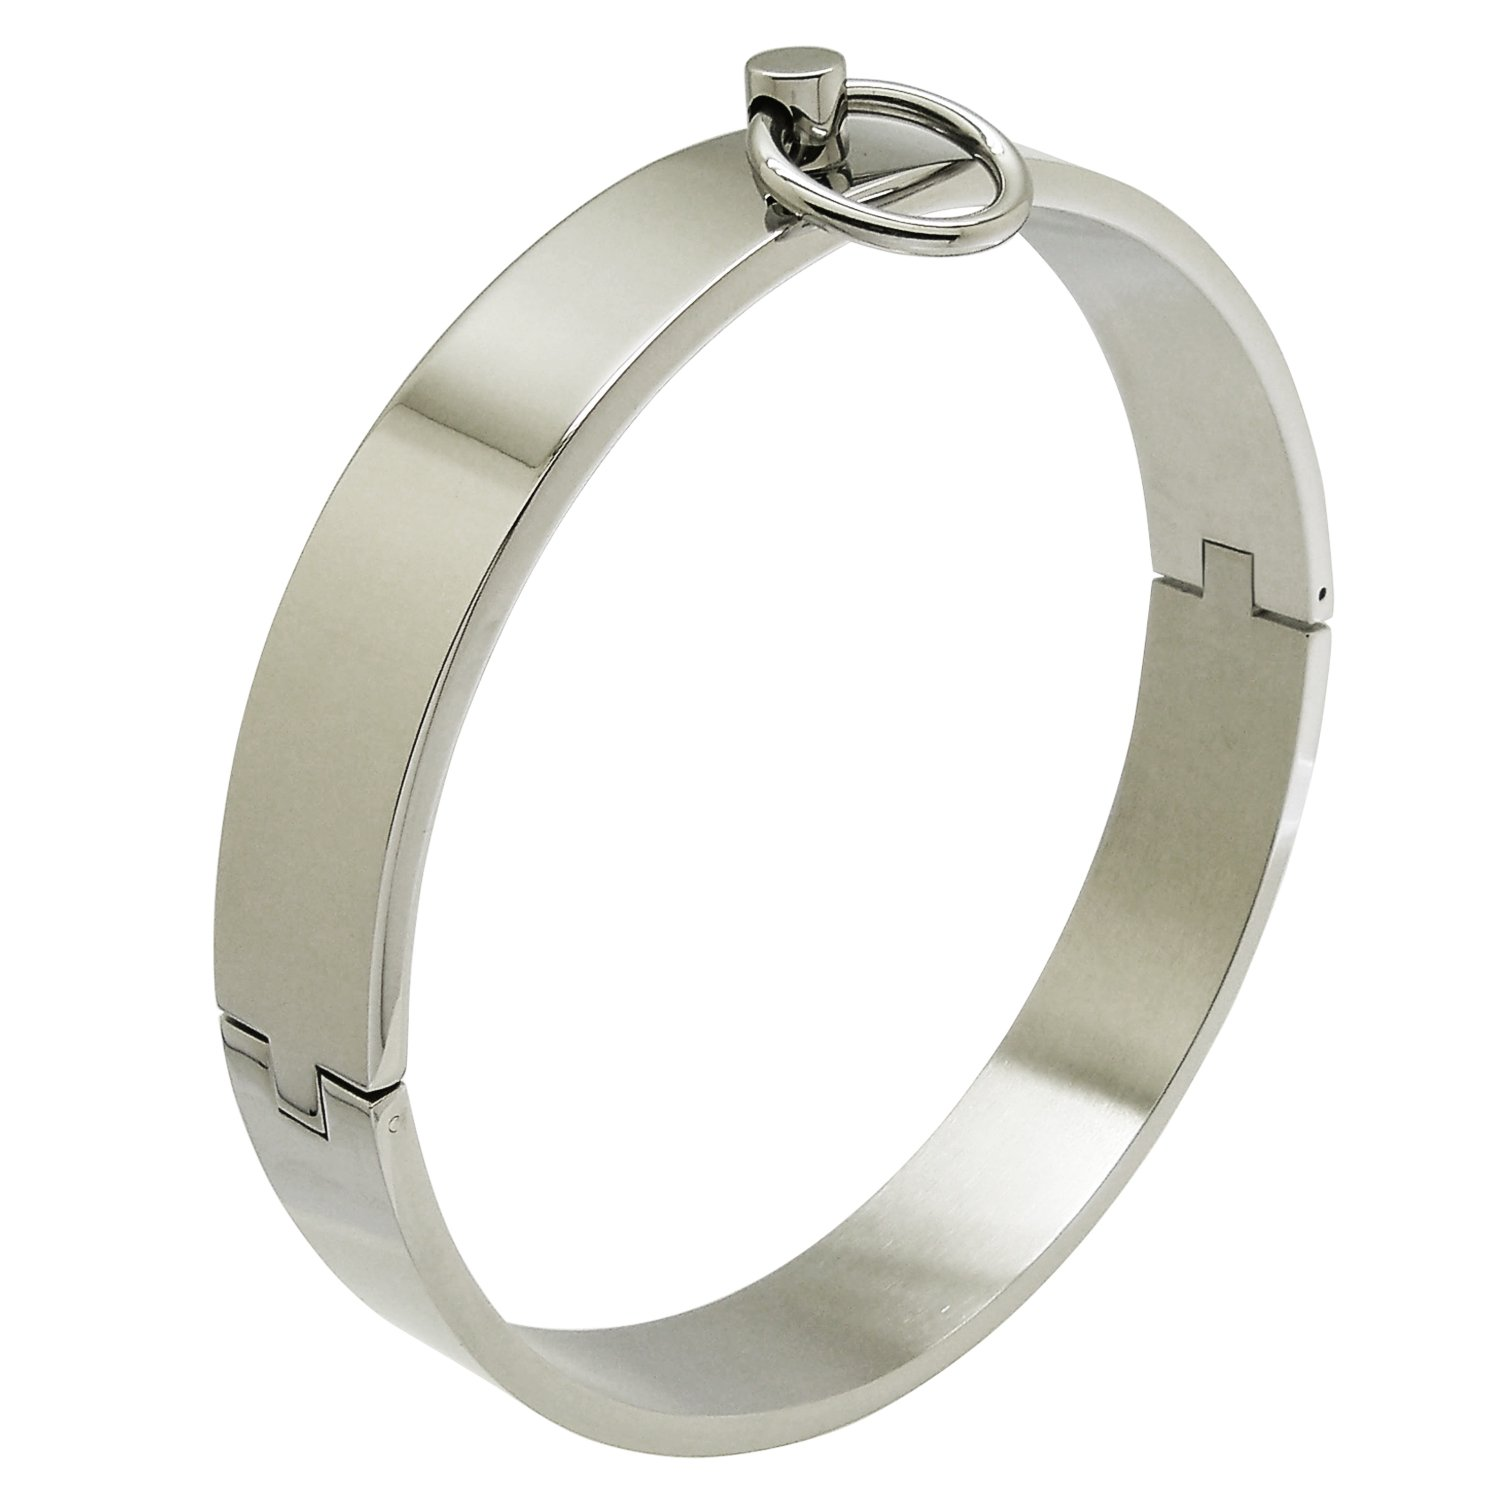 ACECHANNEL Polished Shining Stainless Steel Lockable Neck Collar Choker Necklace (15)